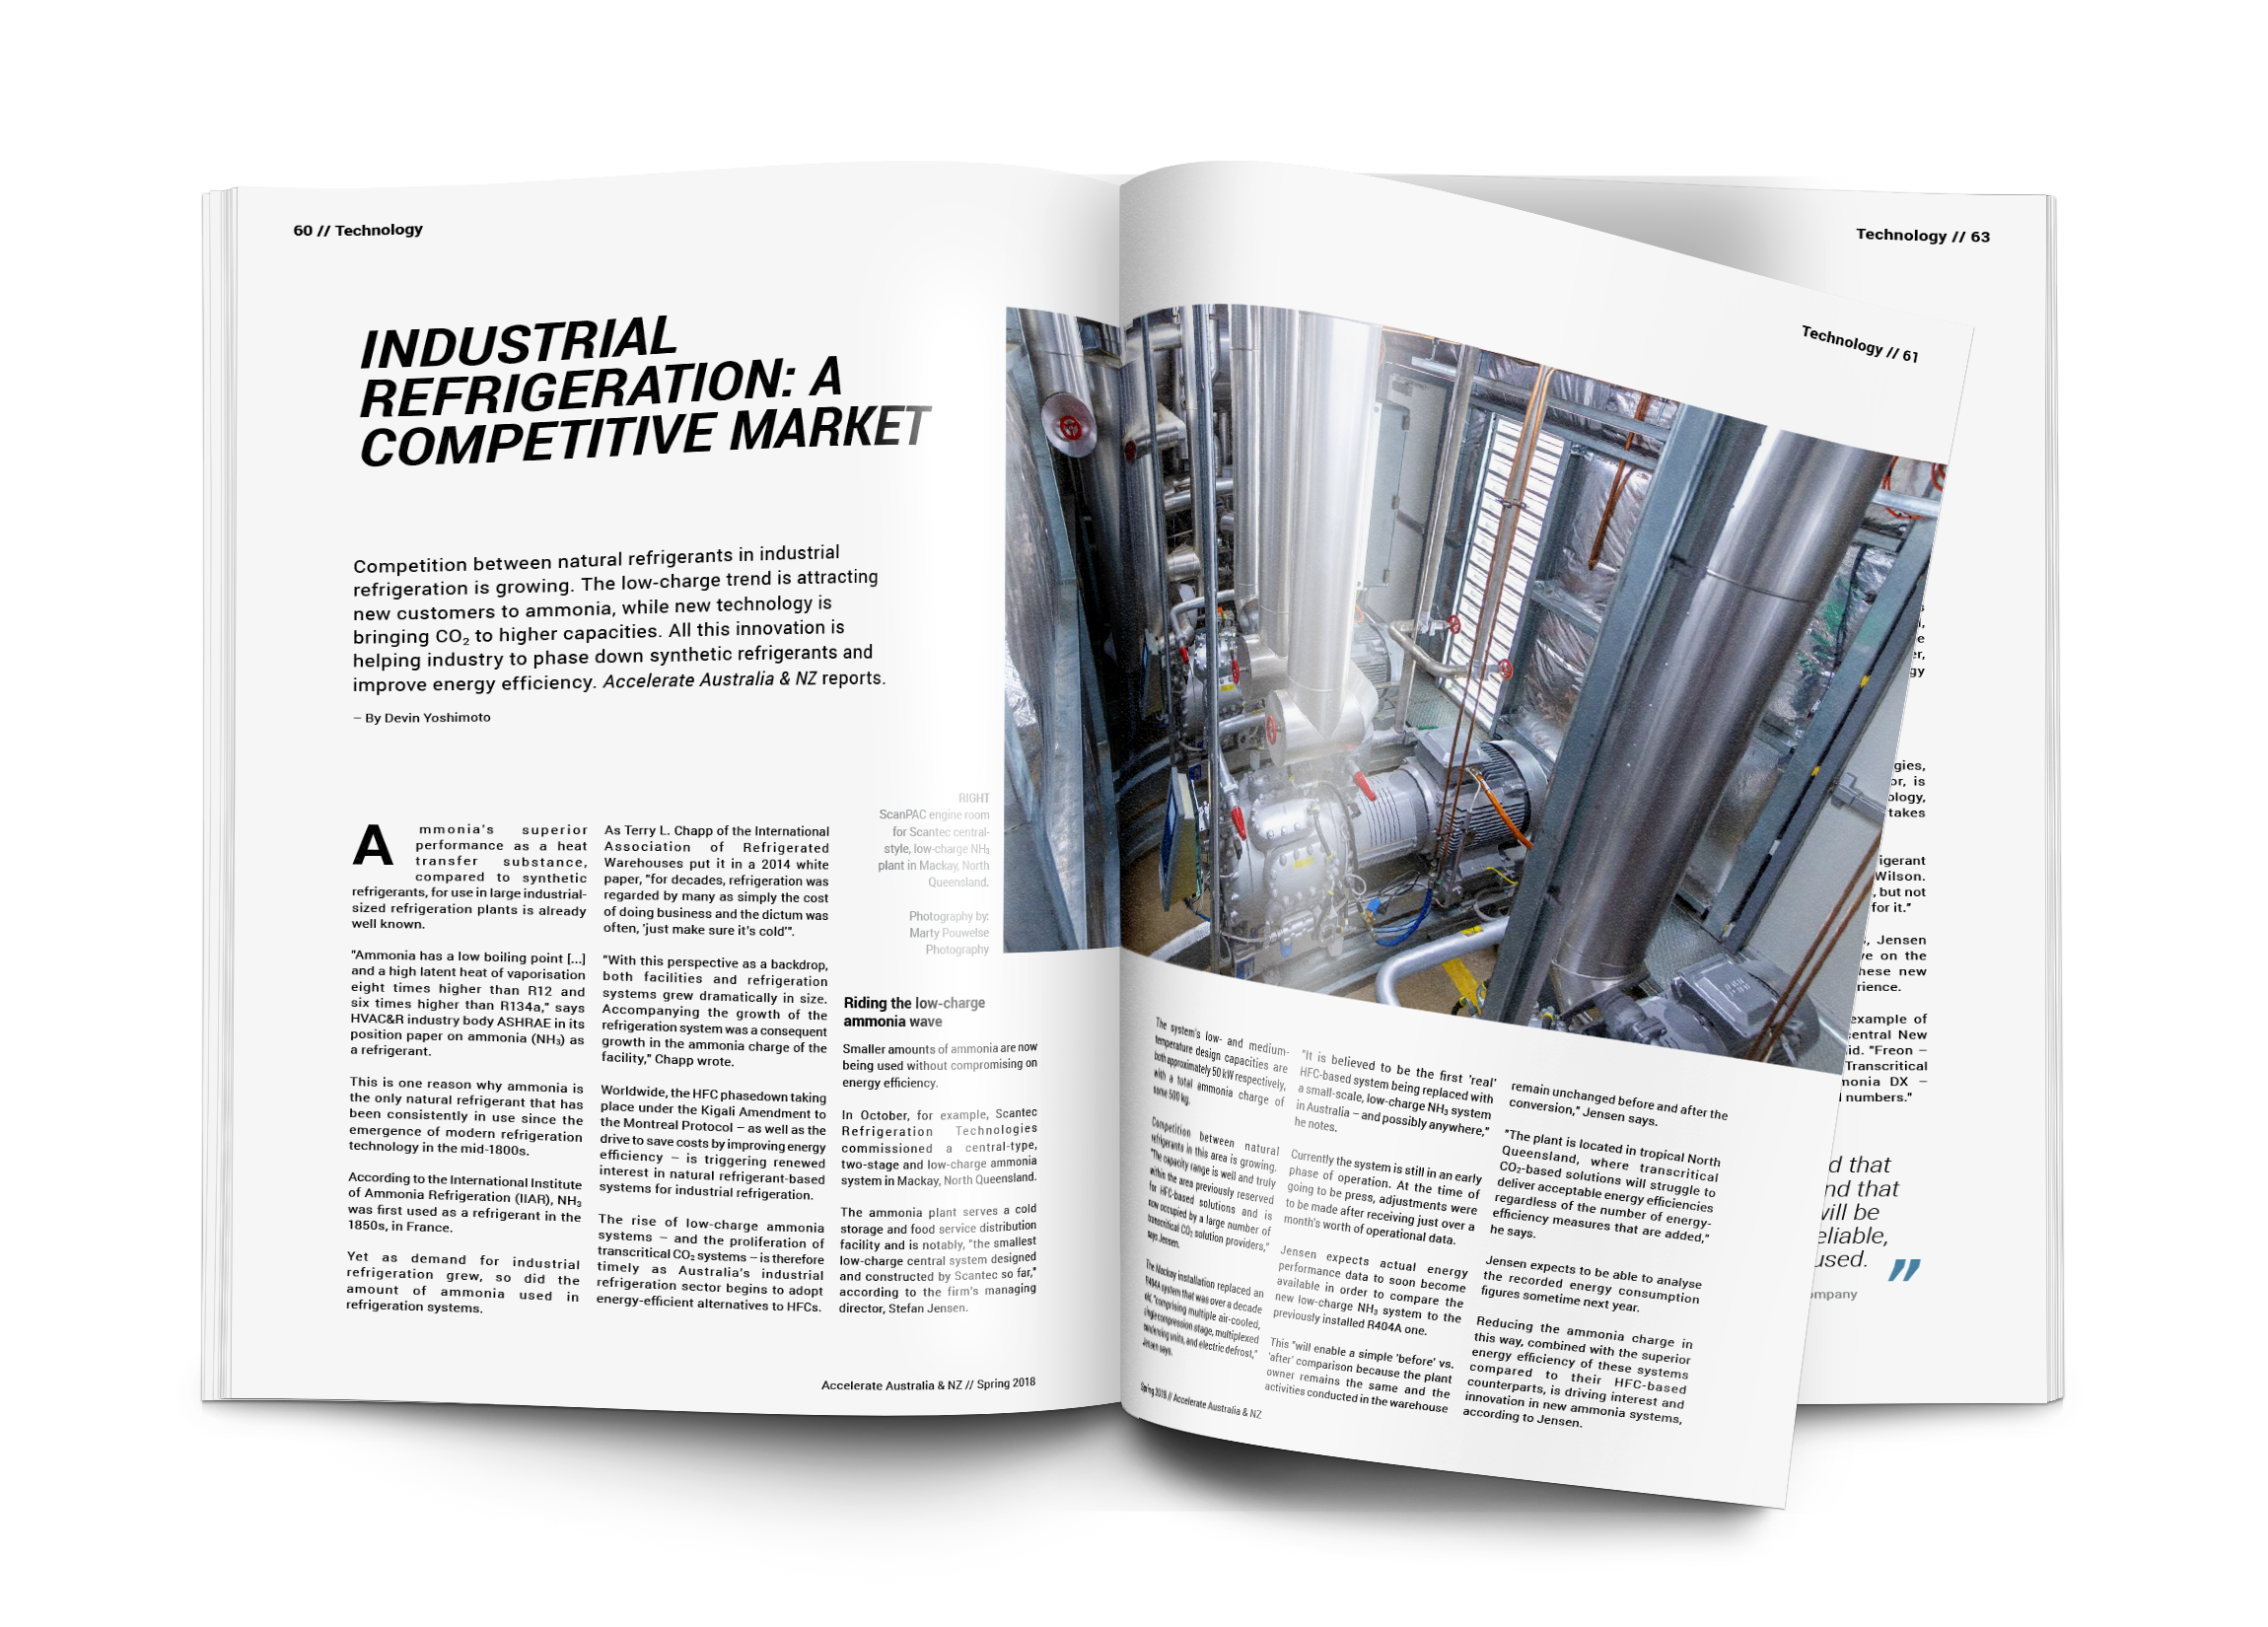 Industrial refrigeration: A competitive market